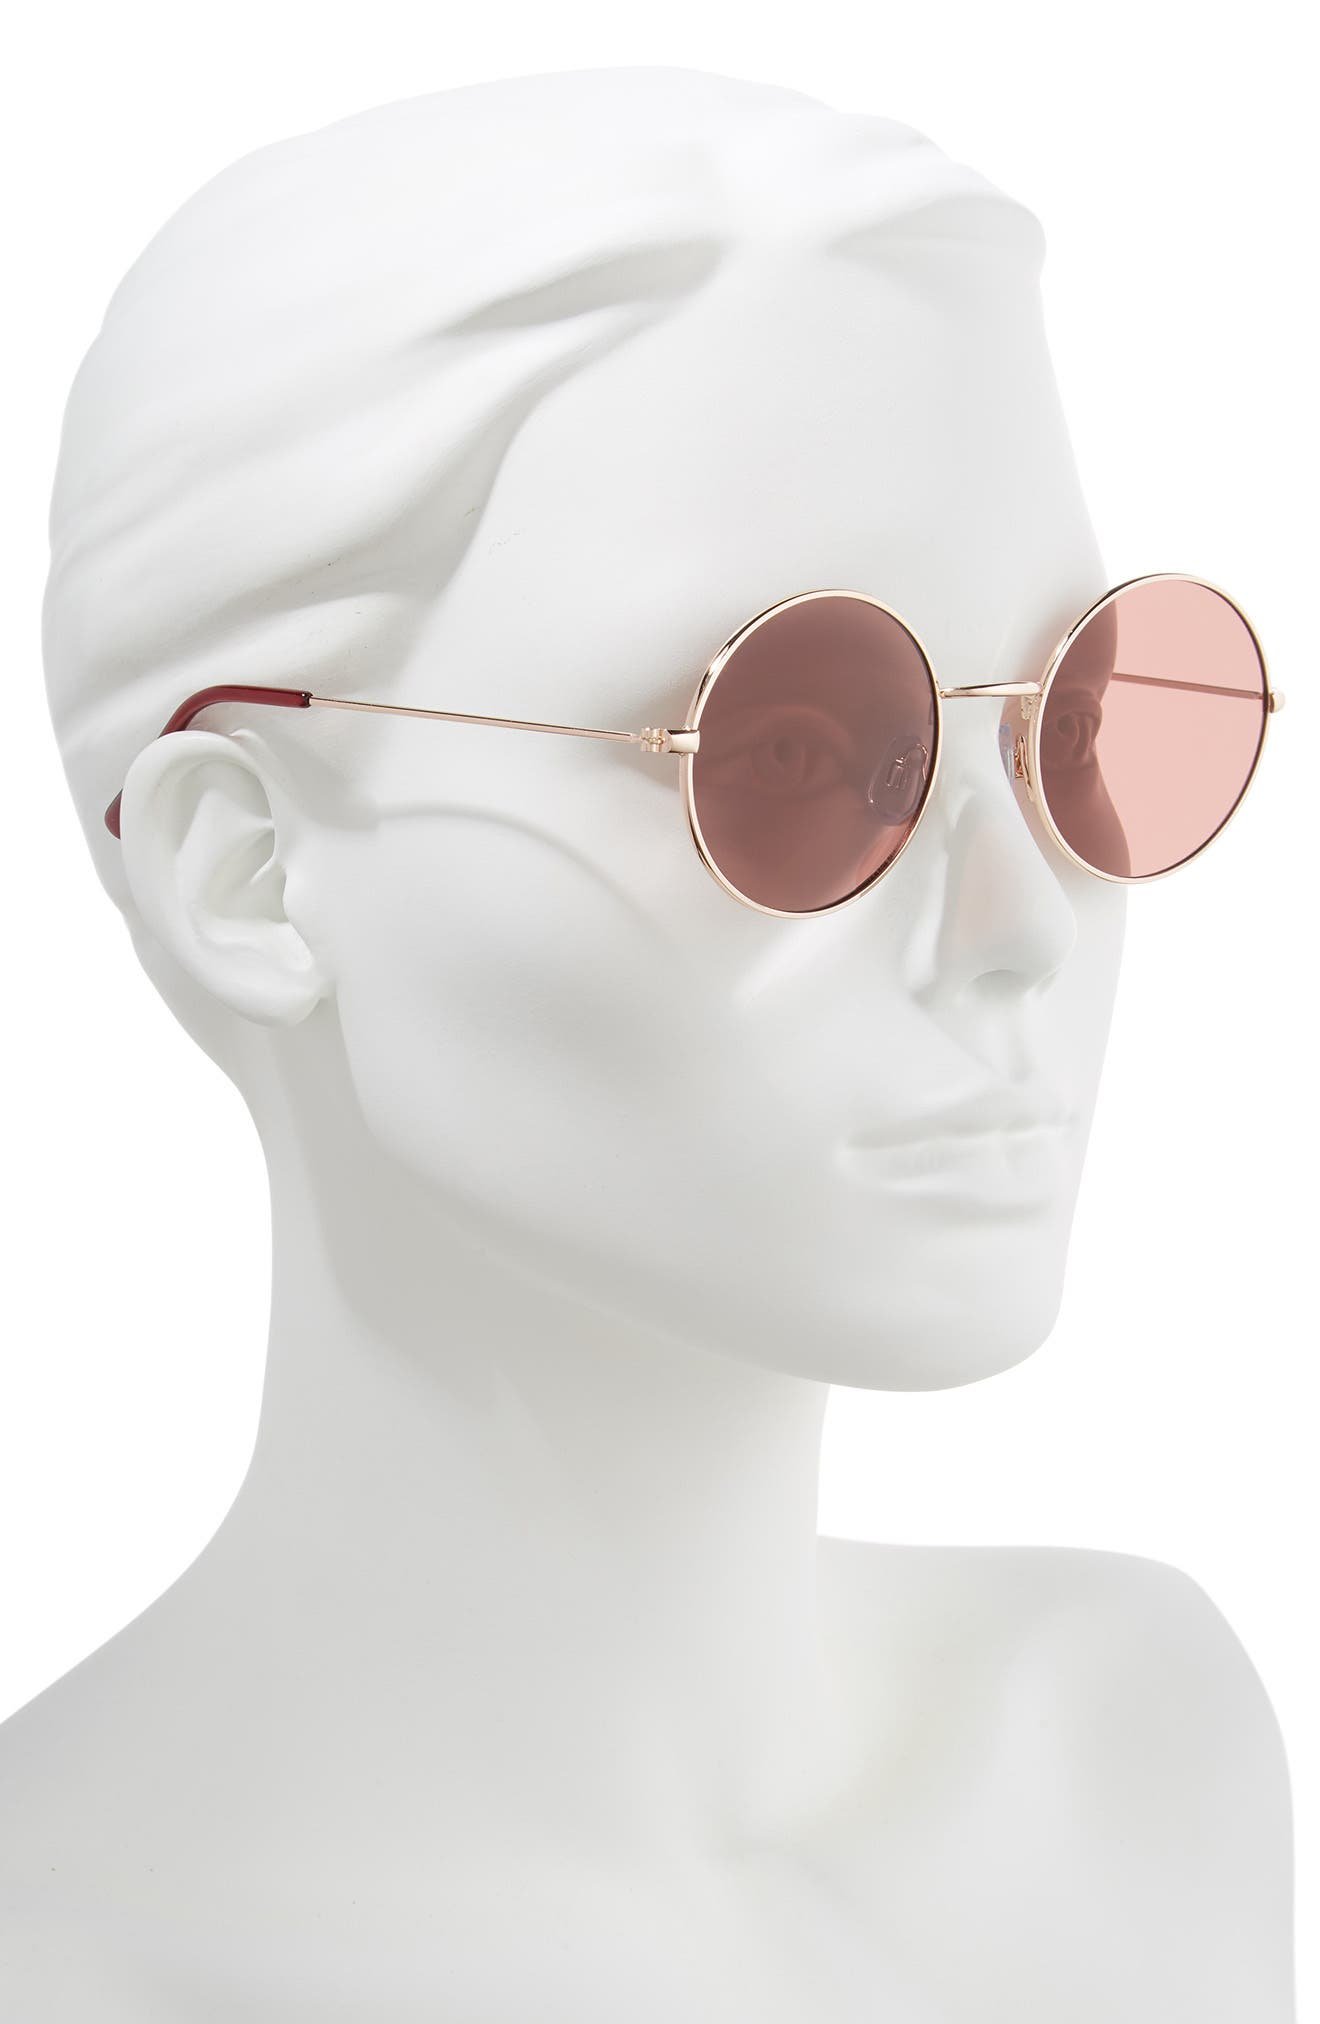 53mm Flat Round Sunglasses,                             Alternate thumbnail 2, color,                             GOLD/ BROWN